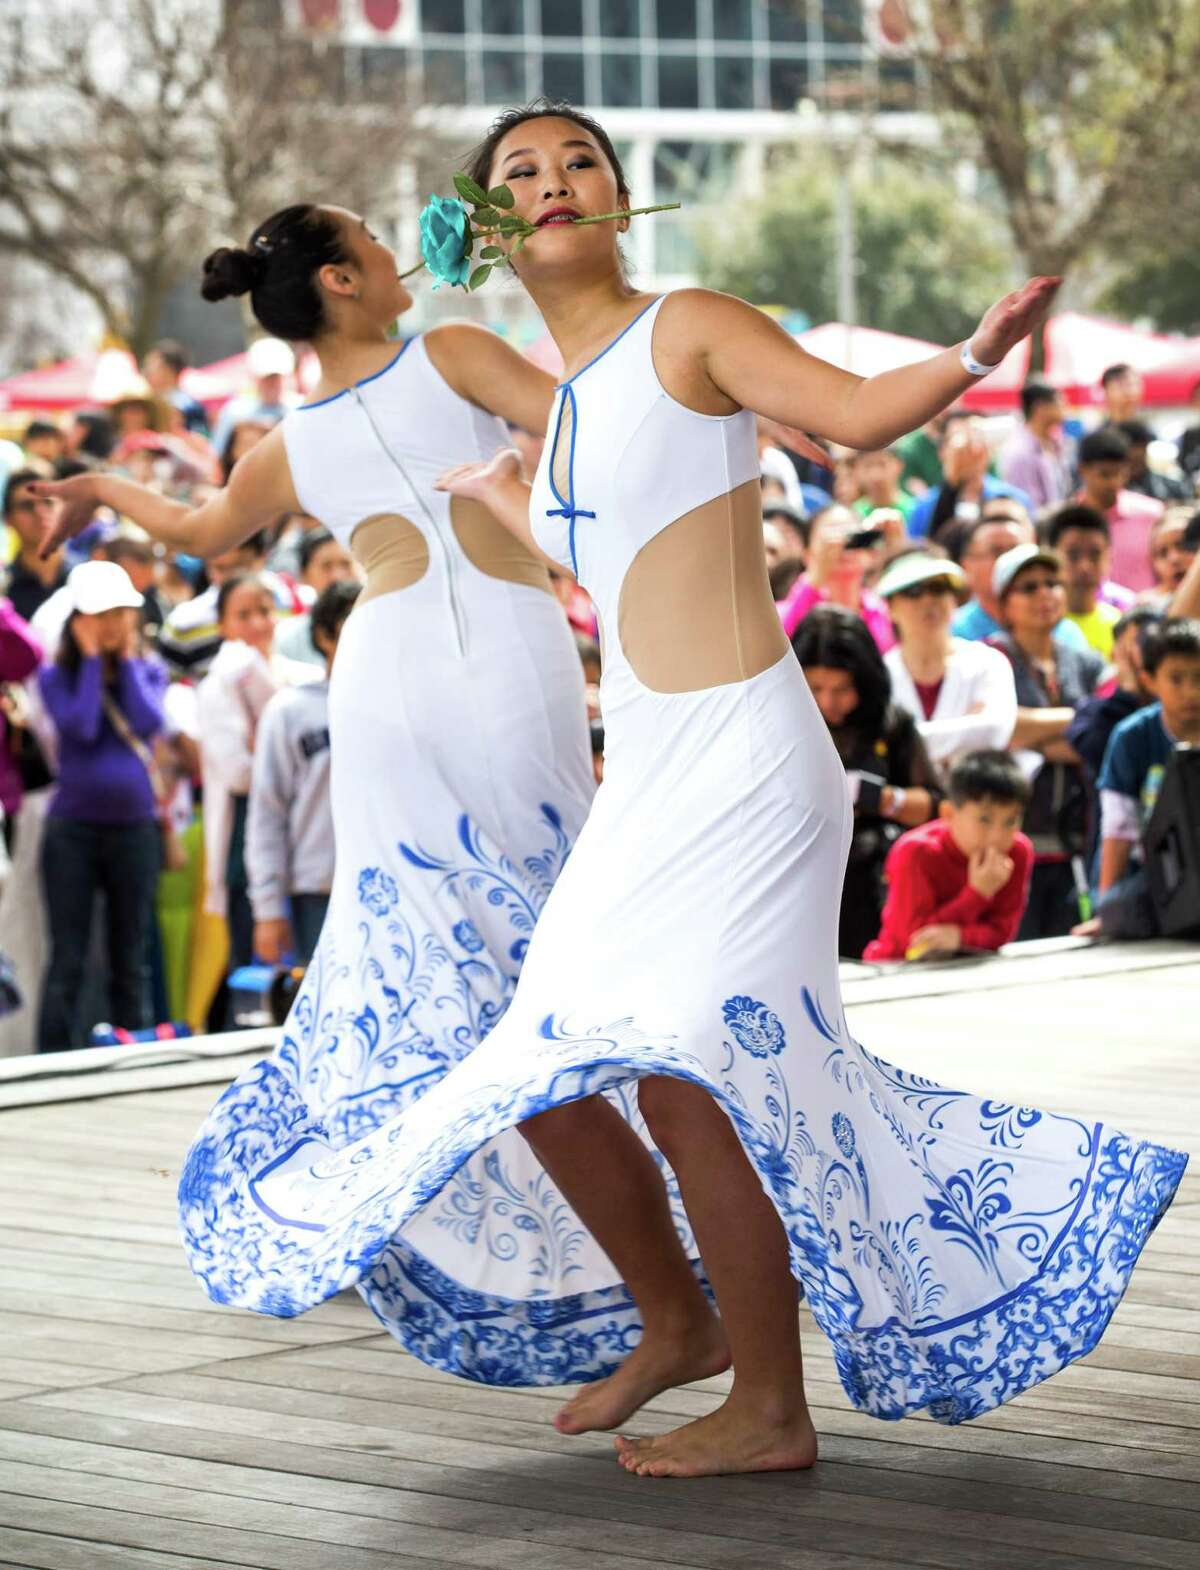 Dancers of the Flower dance troupe perform during the 19th Annual Texas Lunar New Year Celebration at Discovery Green on Saturday, Feb. 21, 2015, in Houston.